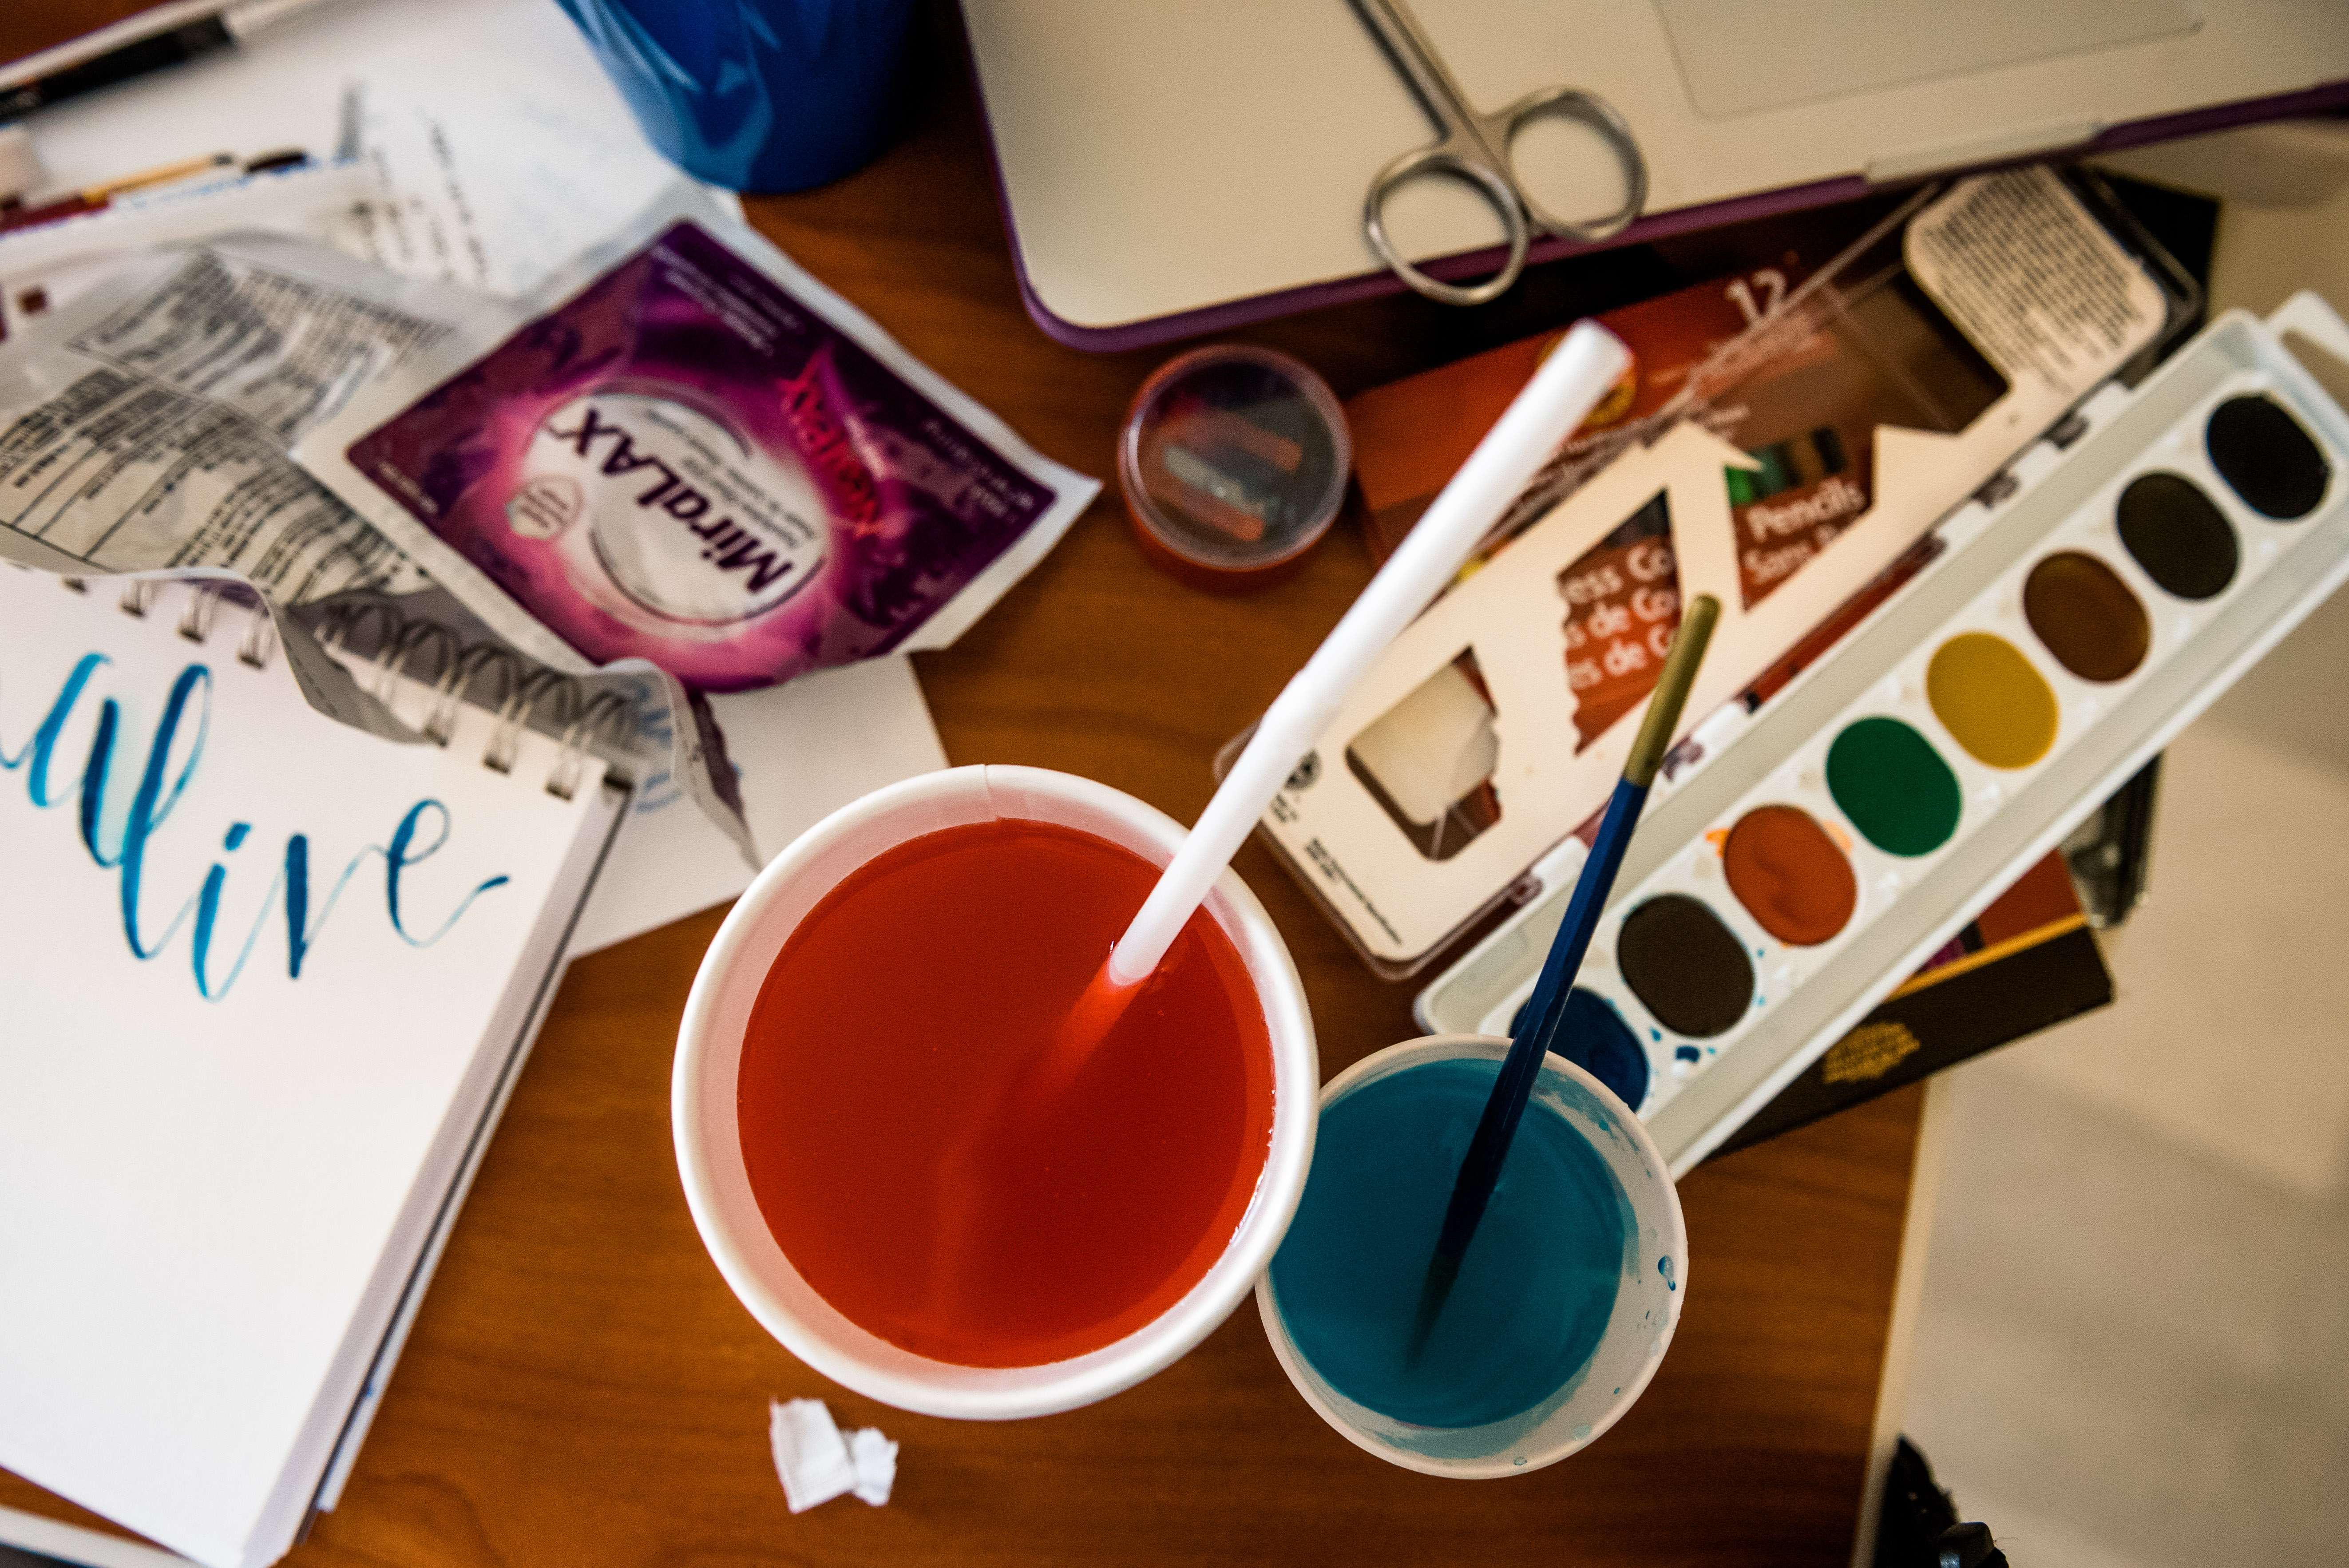 Water color paints, colored water cups with brushes and a sketchpad sit on a table amongst medical wrapper and papers.